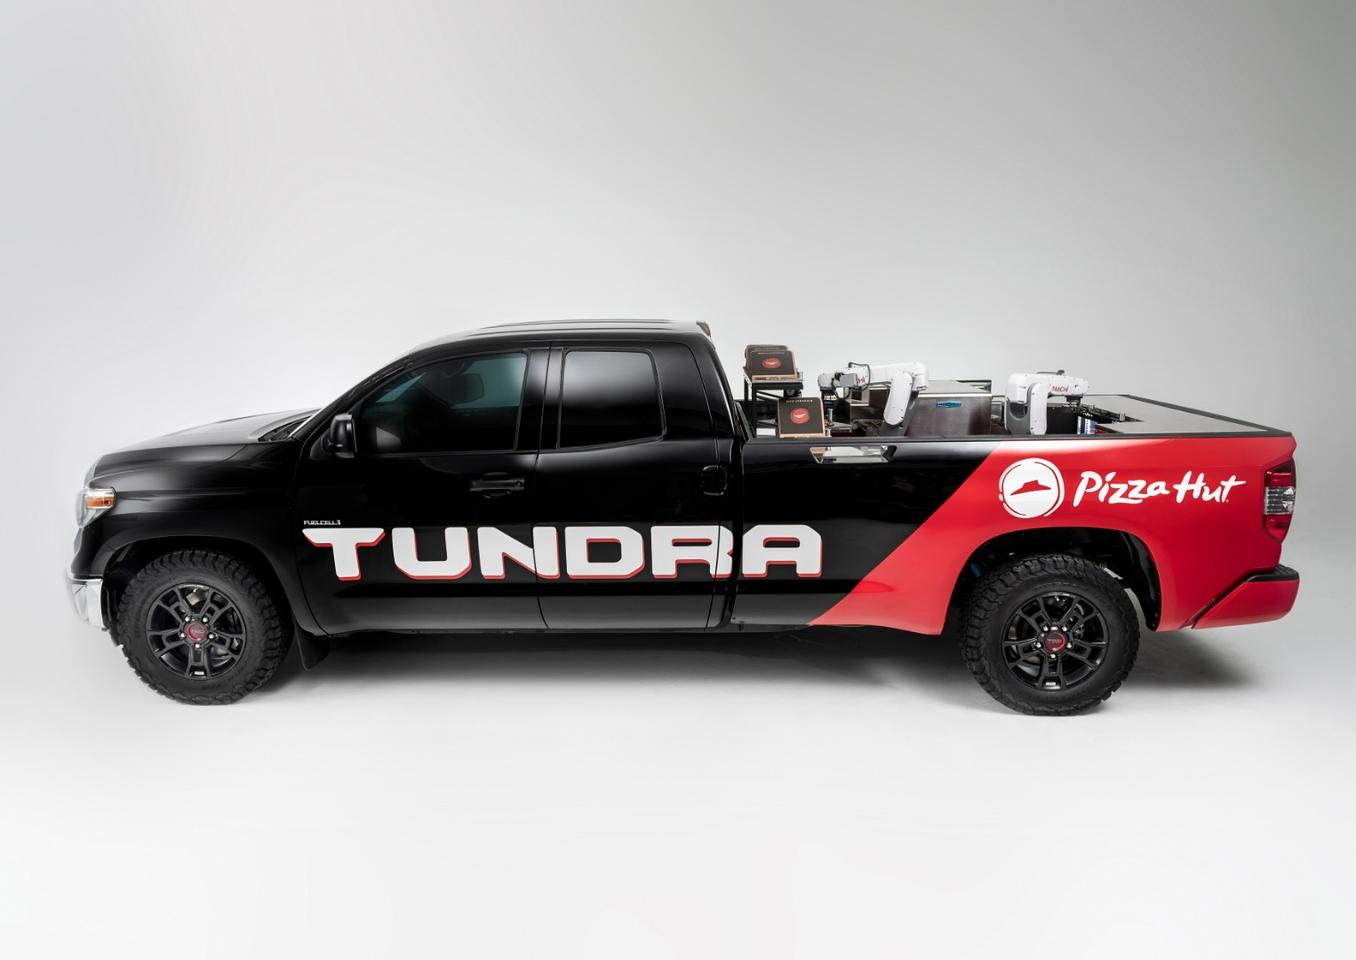 A hydrogen fuel cell powertrain ensures that the only emissions from this Toyota Tundra Pie Pro truck are water vapor and pizza